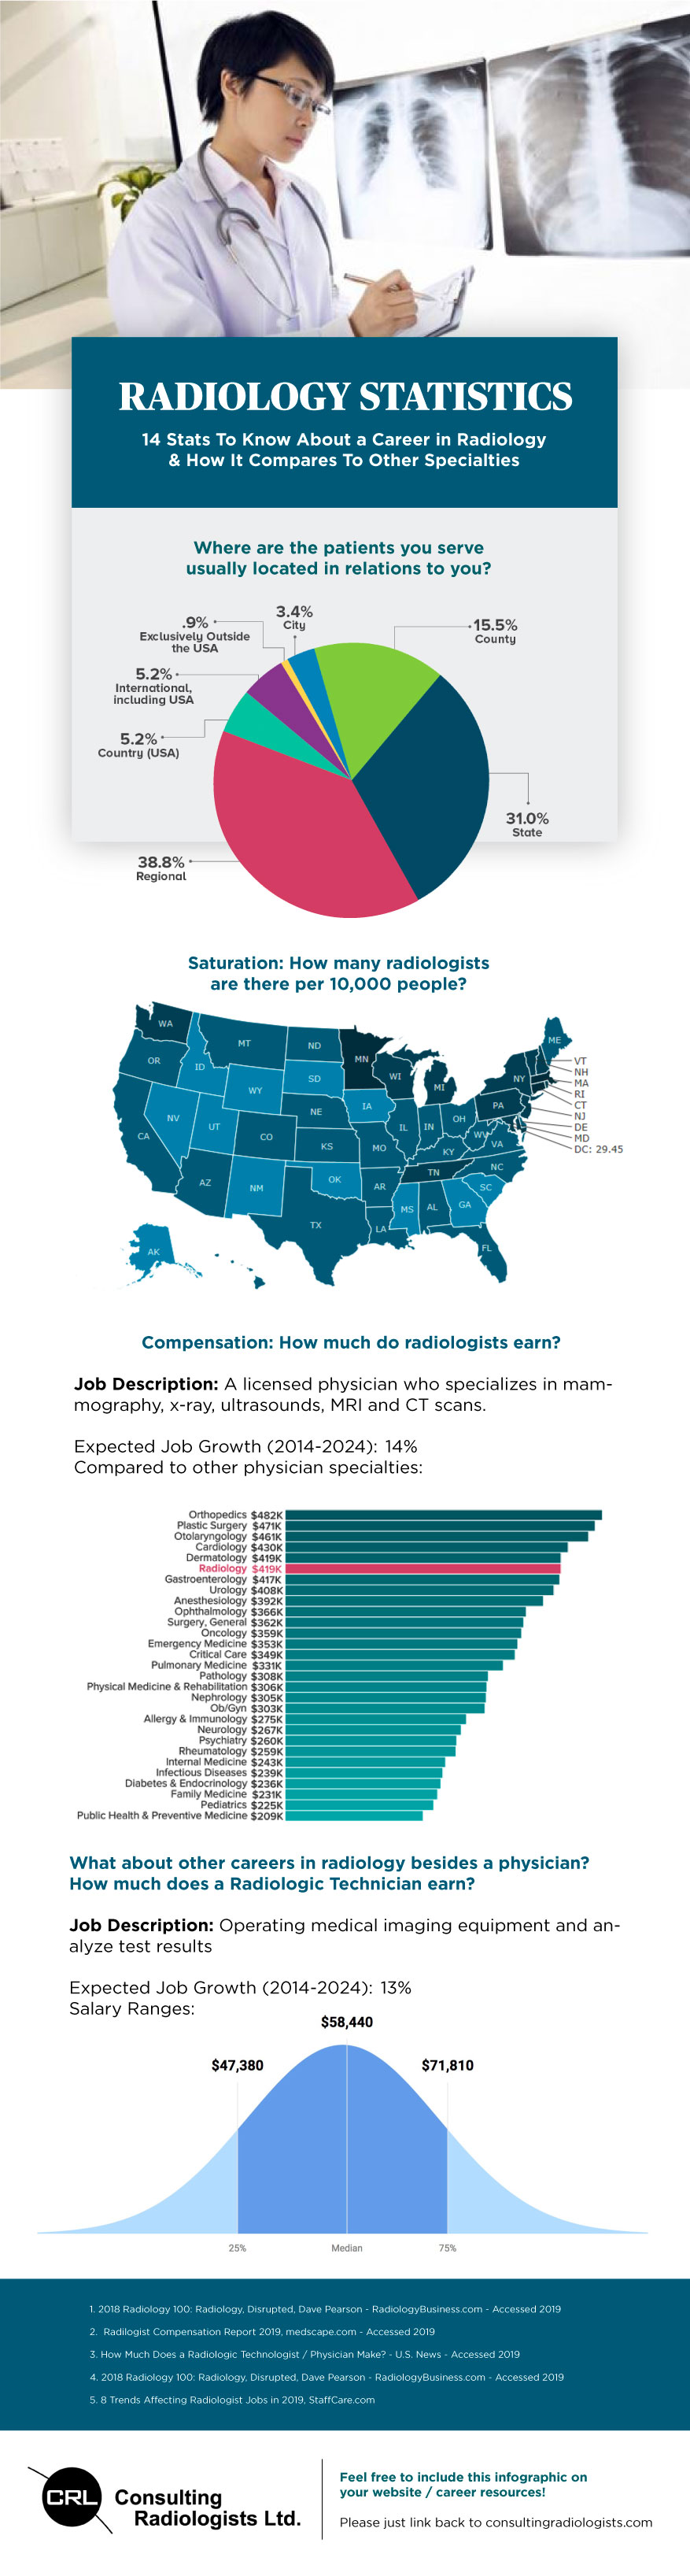 Radiology statistics / infographic / graphs for 2019 - 2020